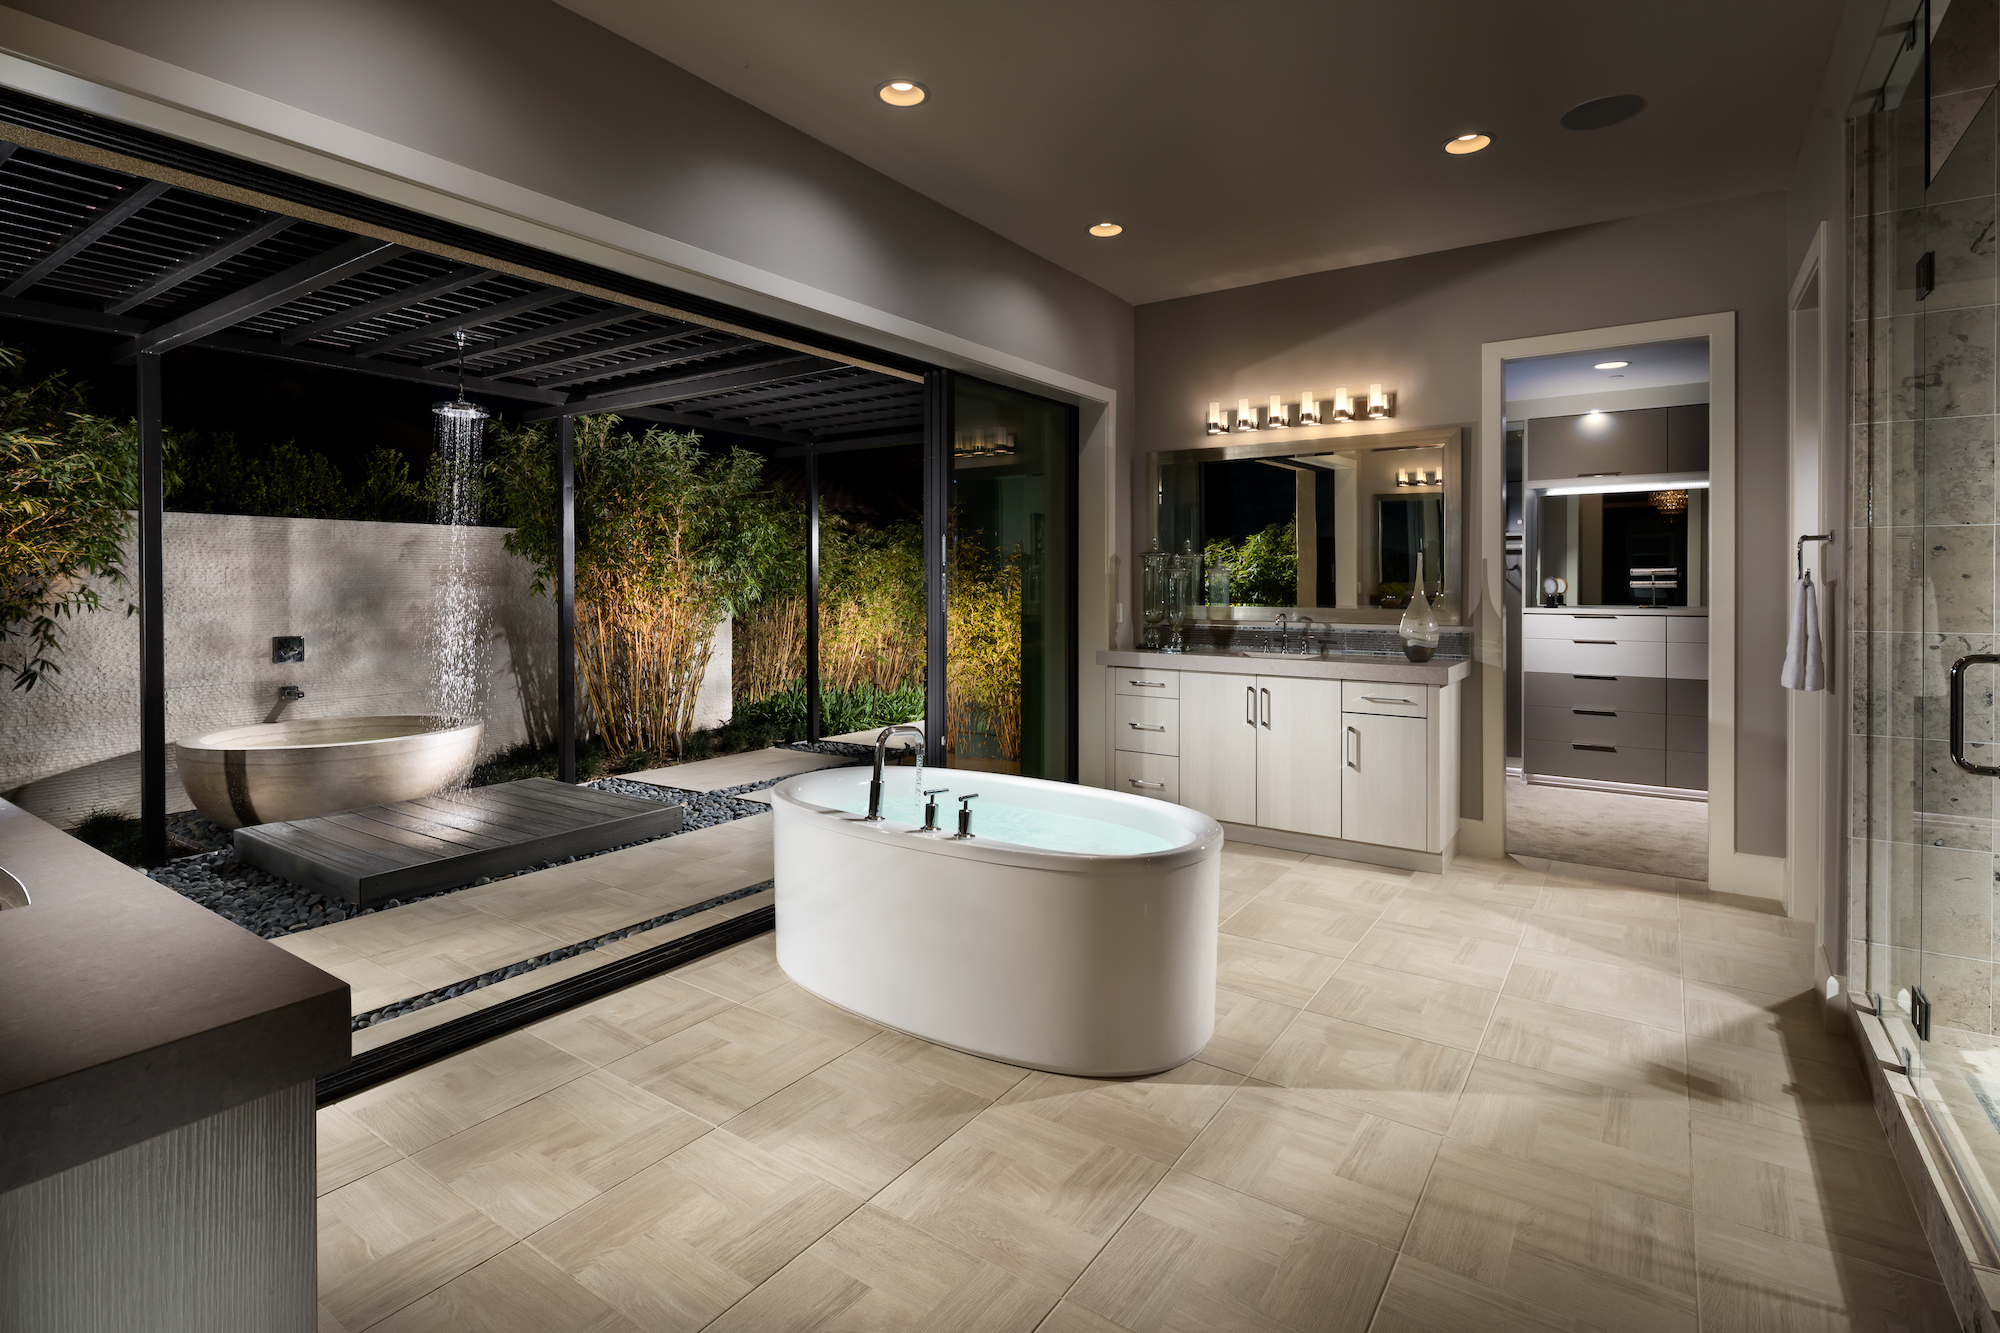 25 Luxury Bathroom Ideas & Designs | Build Beautiful